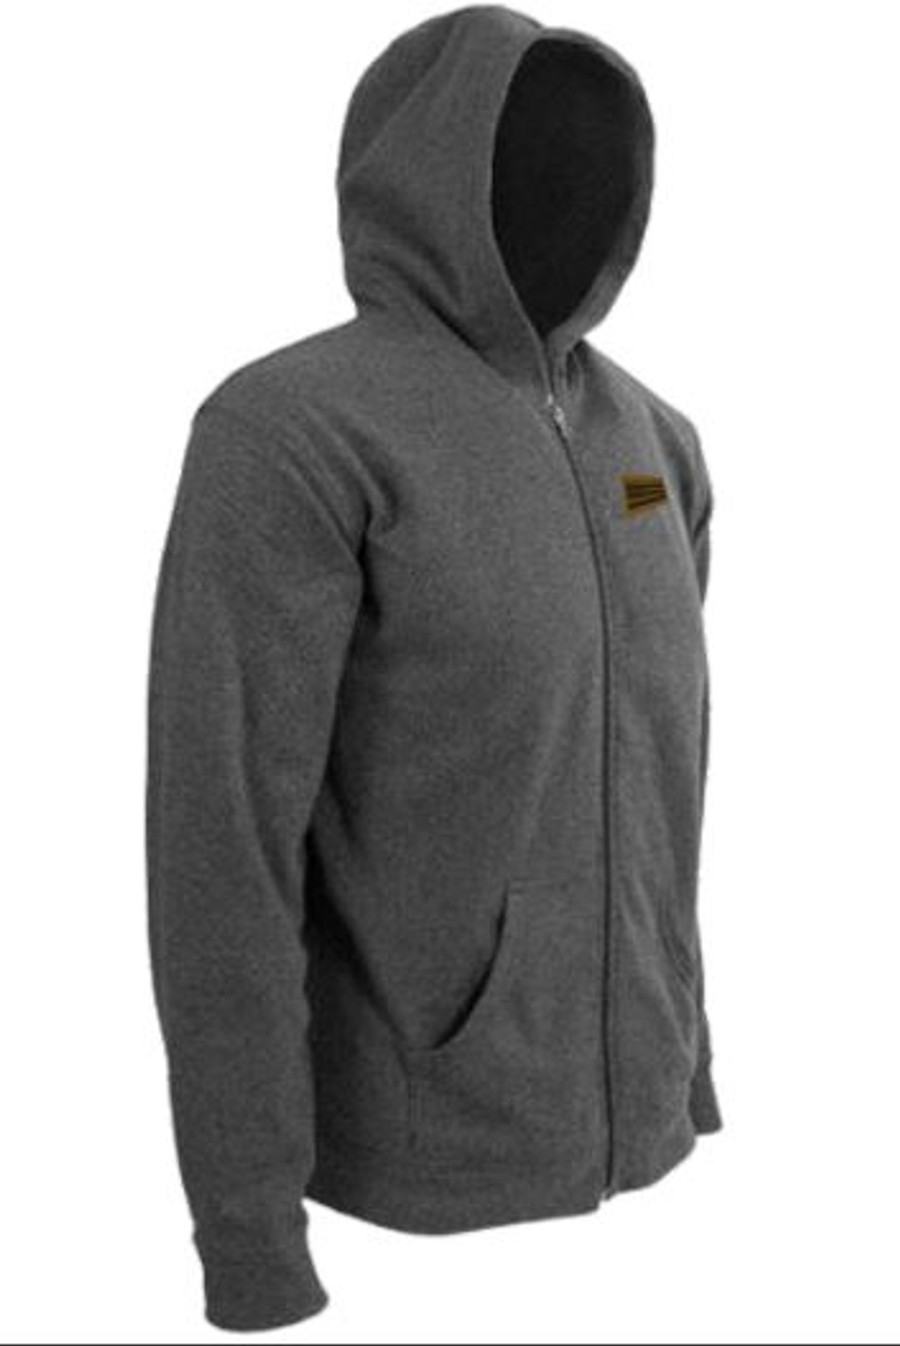 Classic Zip-up Hoodie w/ Leather Patch - Grey